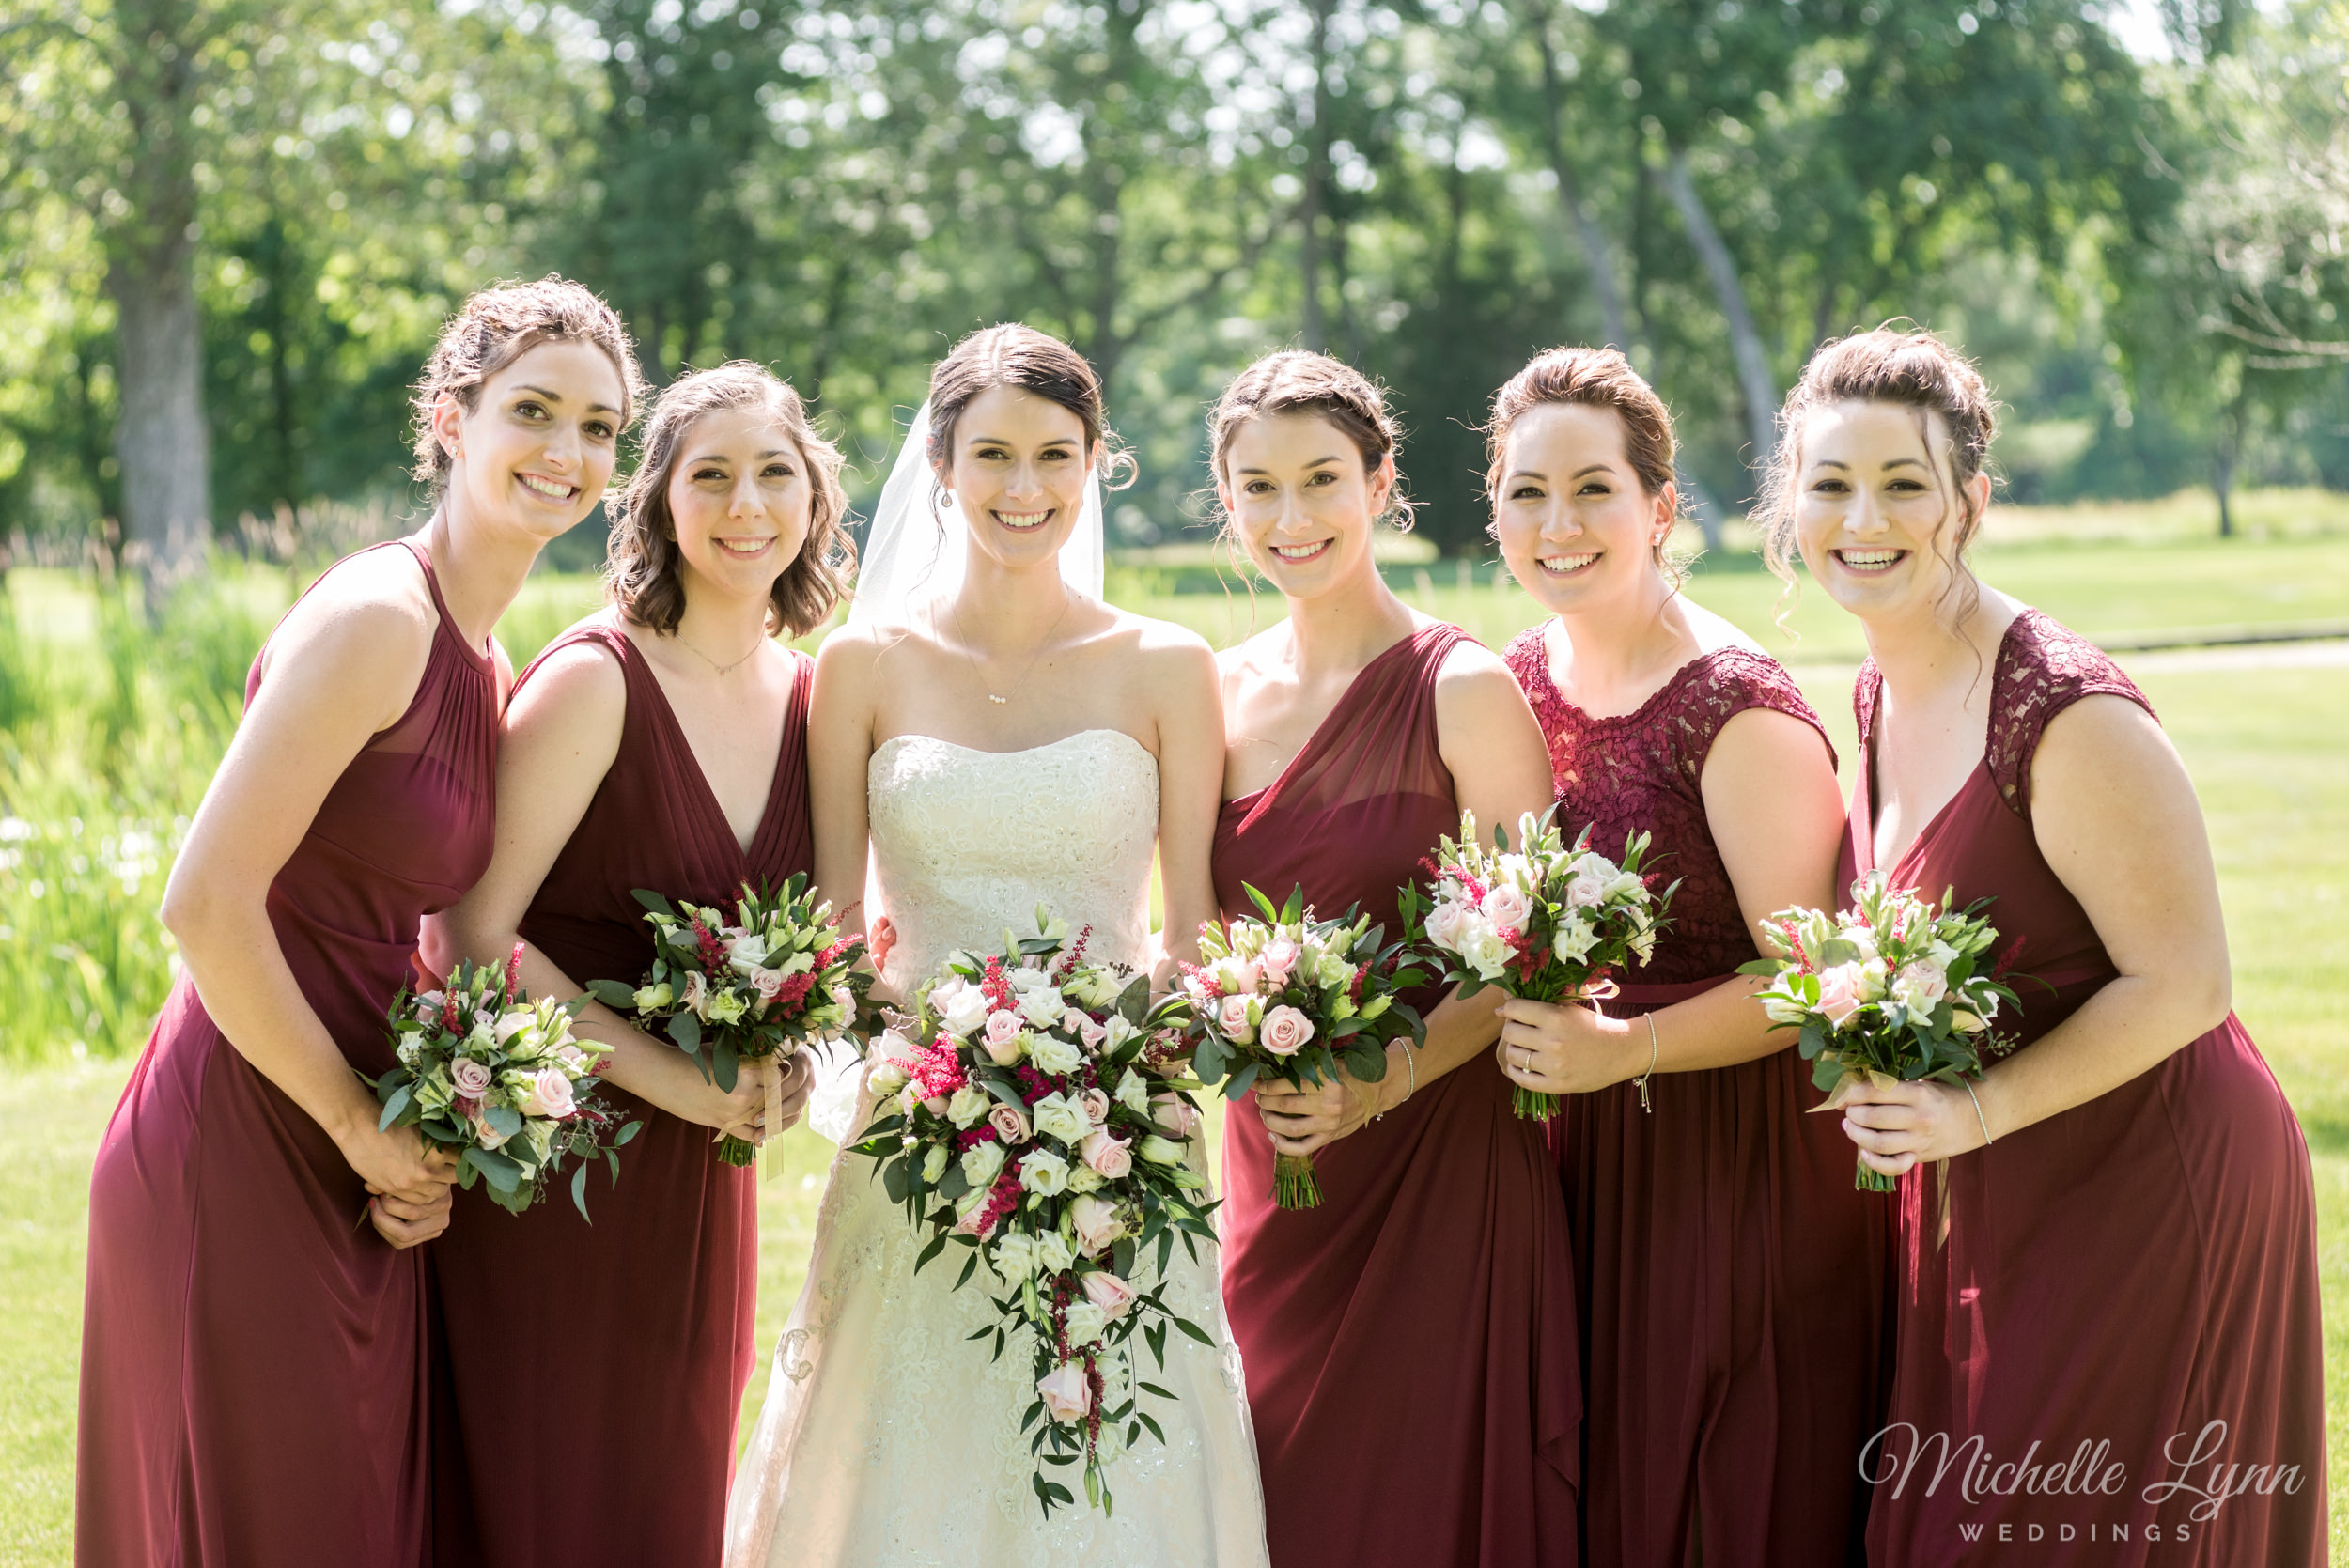 mlw-loft-at-sweet-water-country-club-wedding-photography-27.jpg